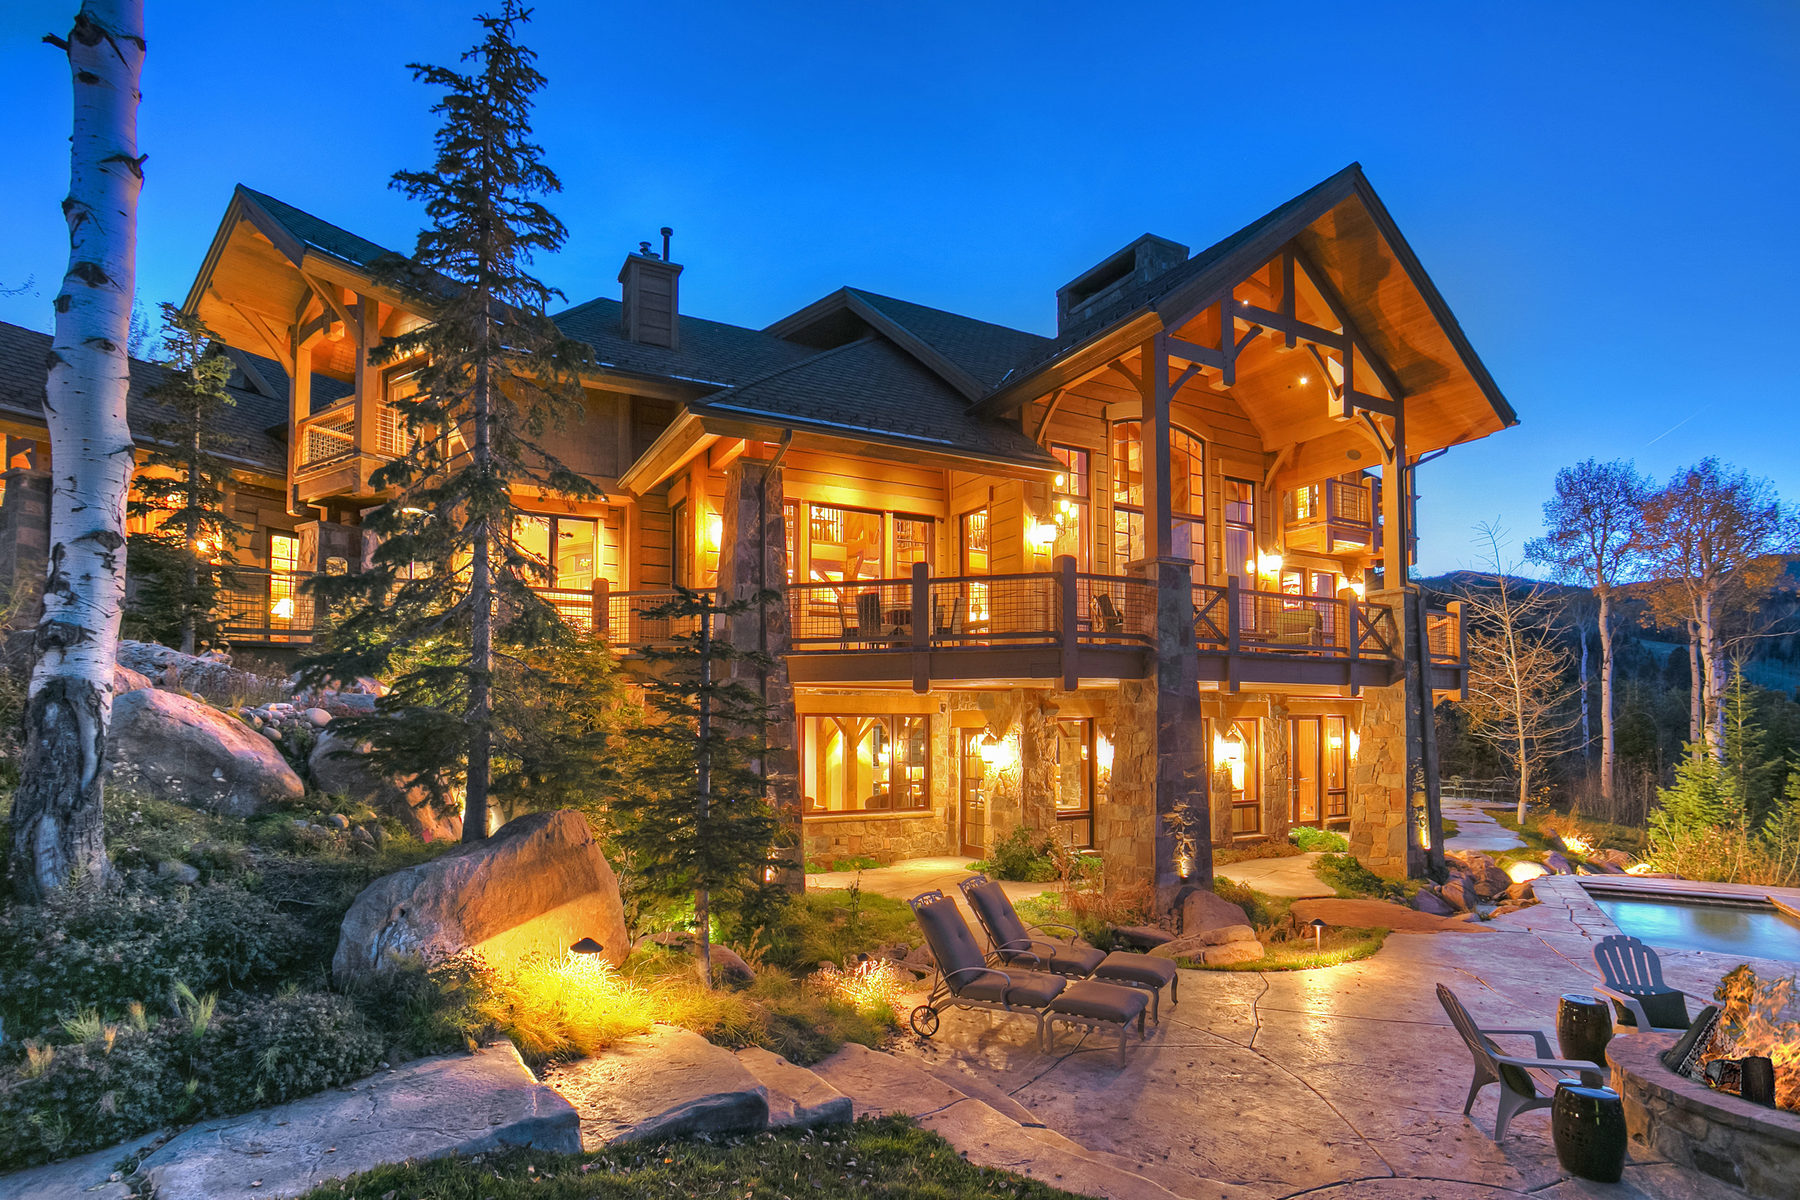 一戸建て のために 売買 アット Ski In/Out Mountain Chateau at Park City 10 Minutes to Main Street 12 White Pine Canyon Rd Park City, ユタ, 84060 アメリカ合衆国